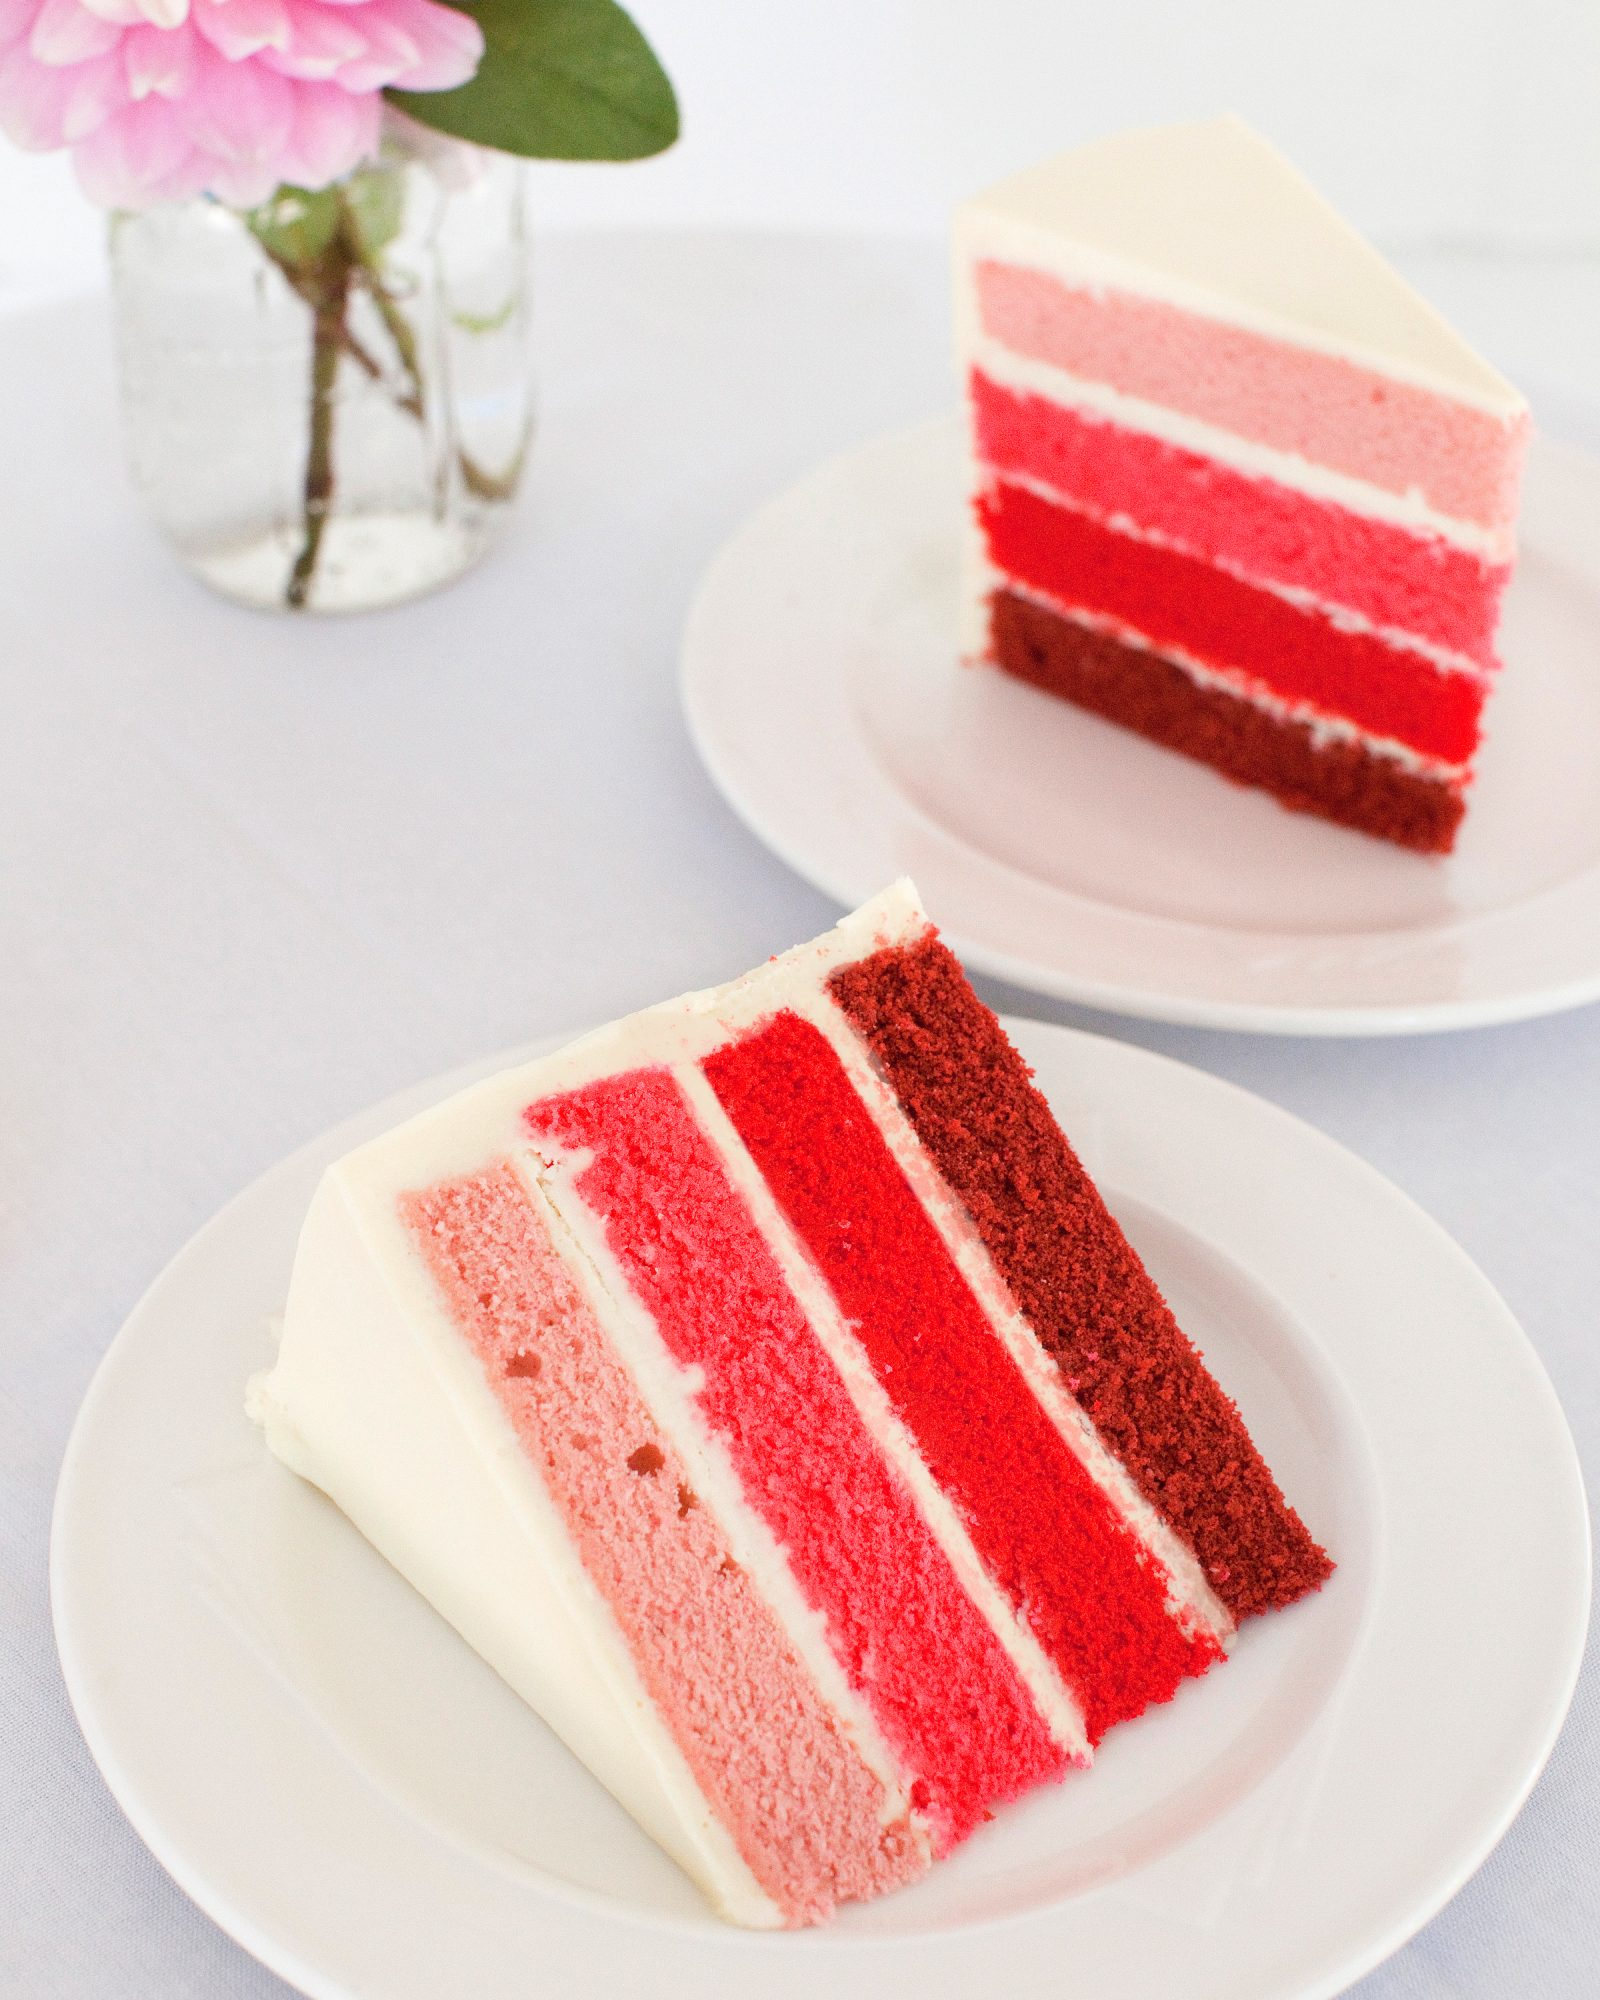 The Cake Slices